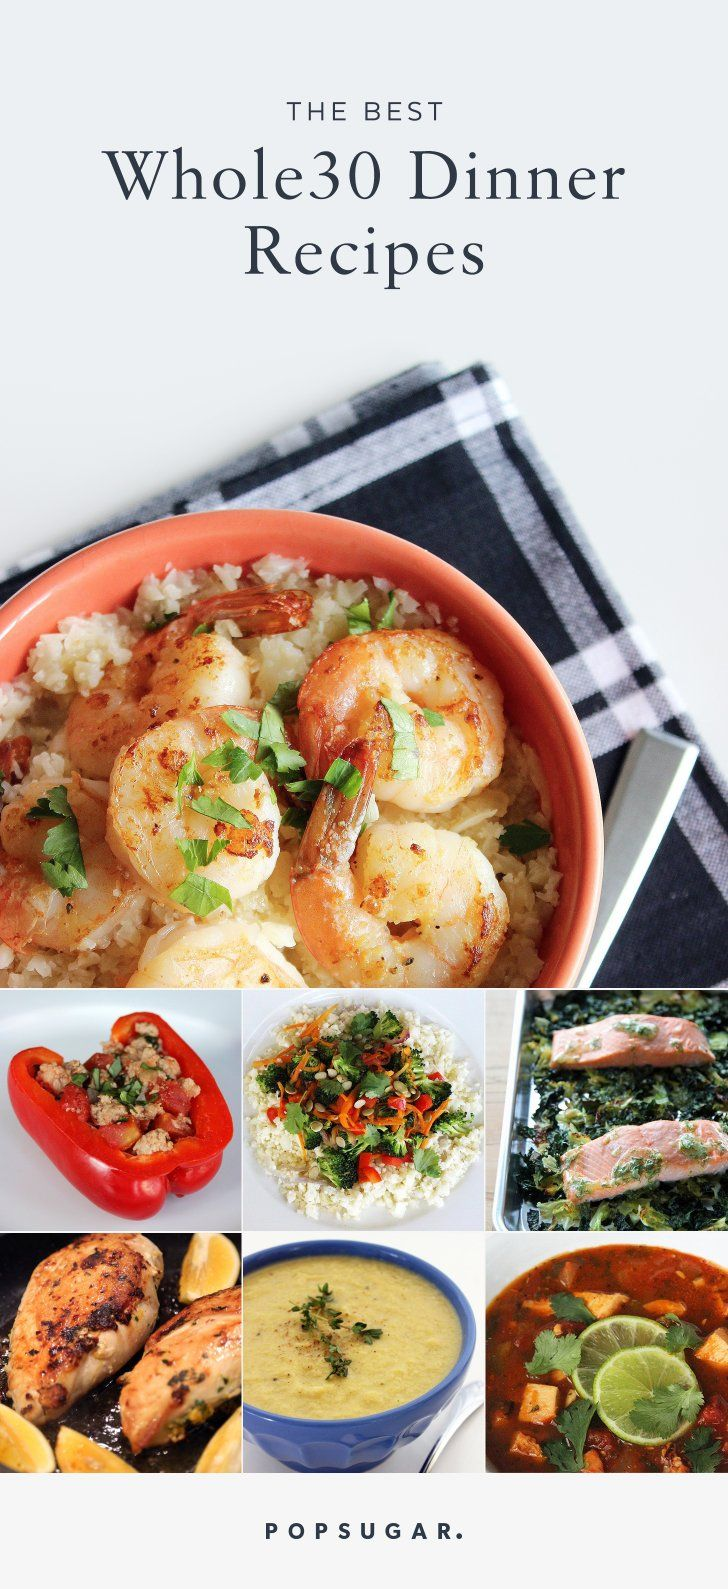 18 Whole30 Dinners You'll Make Well After Your Diet Ends